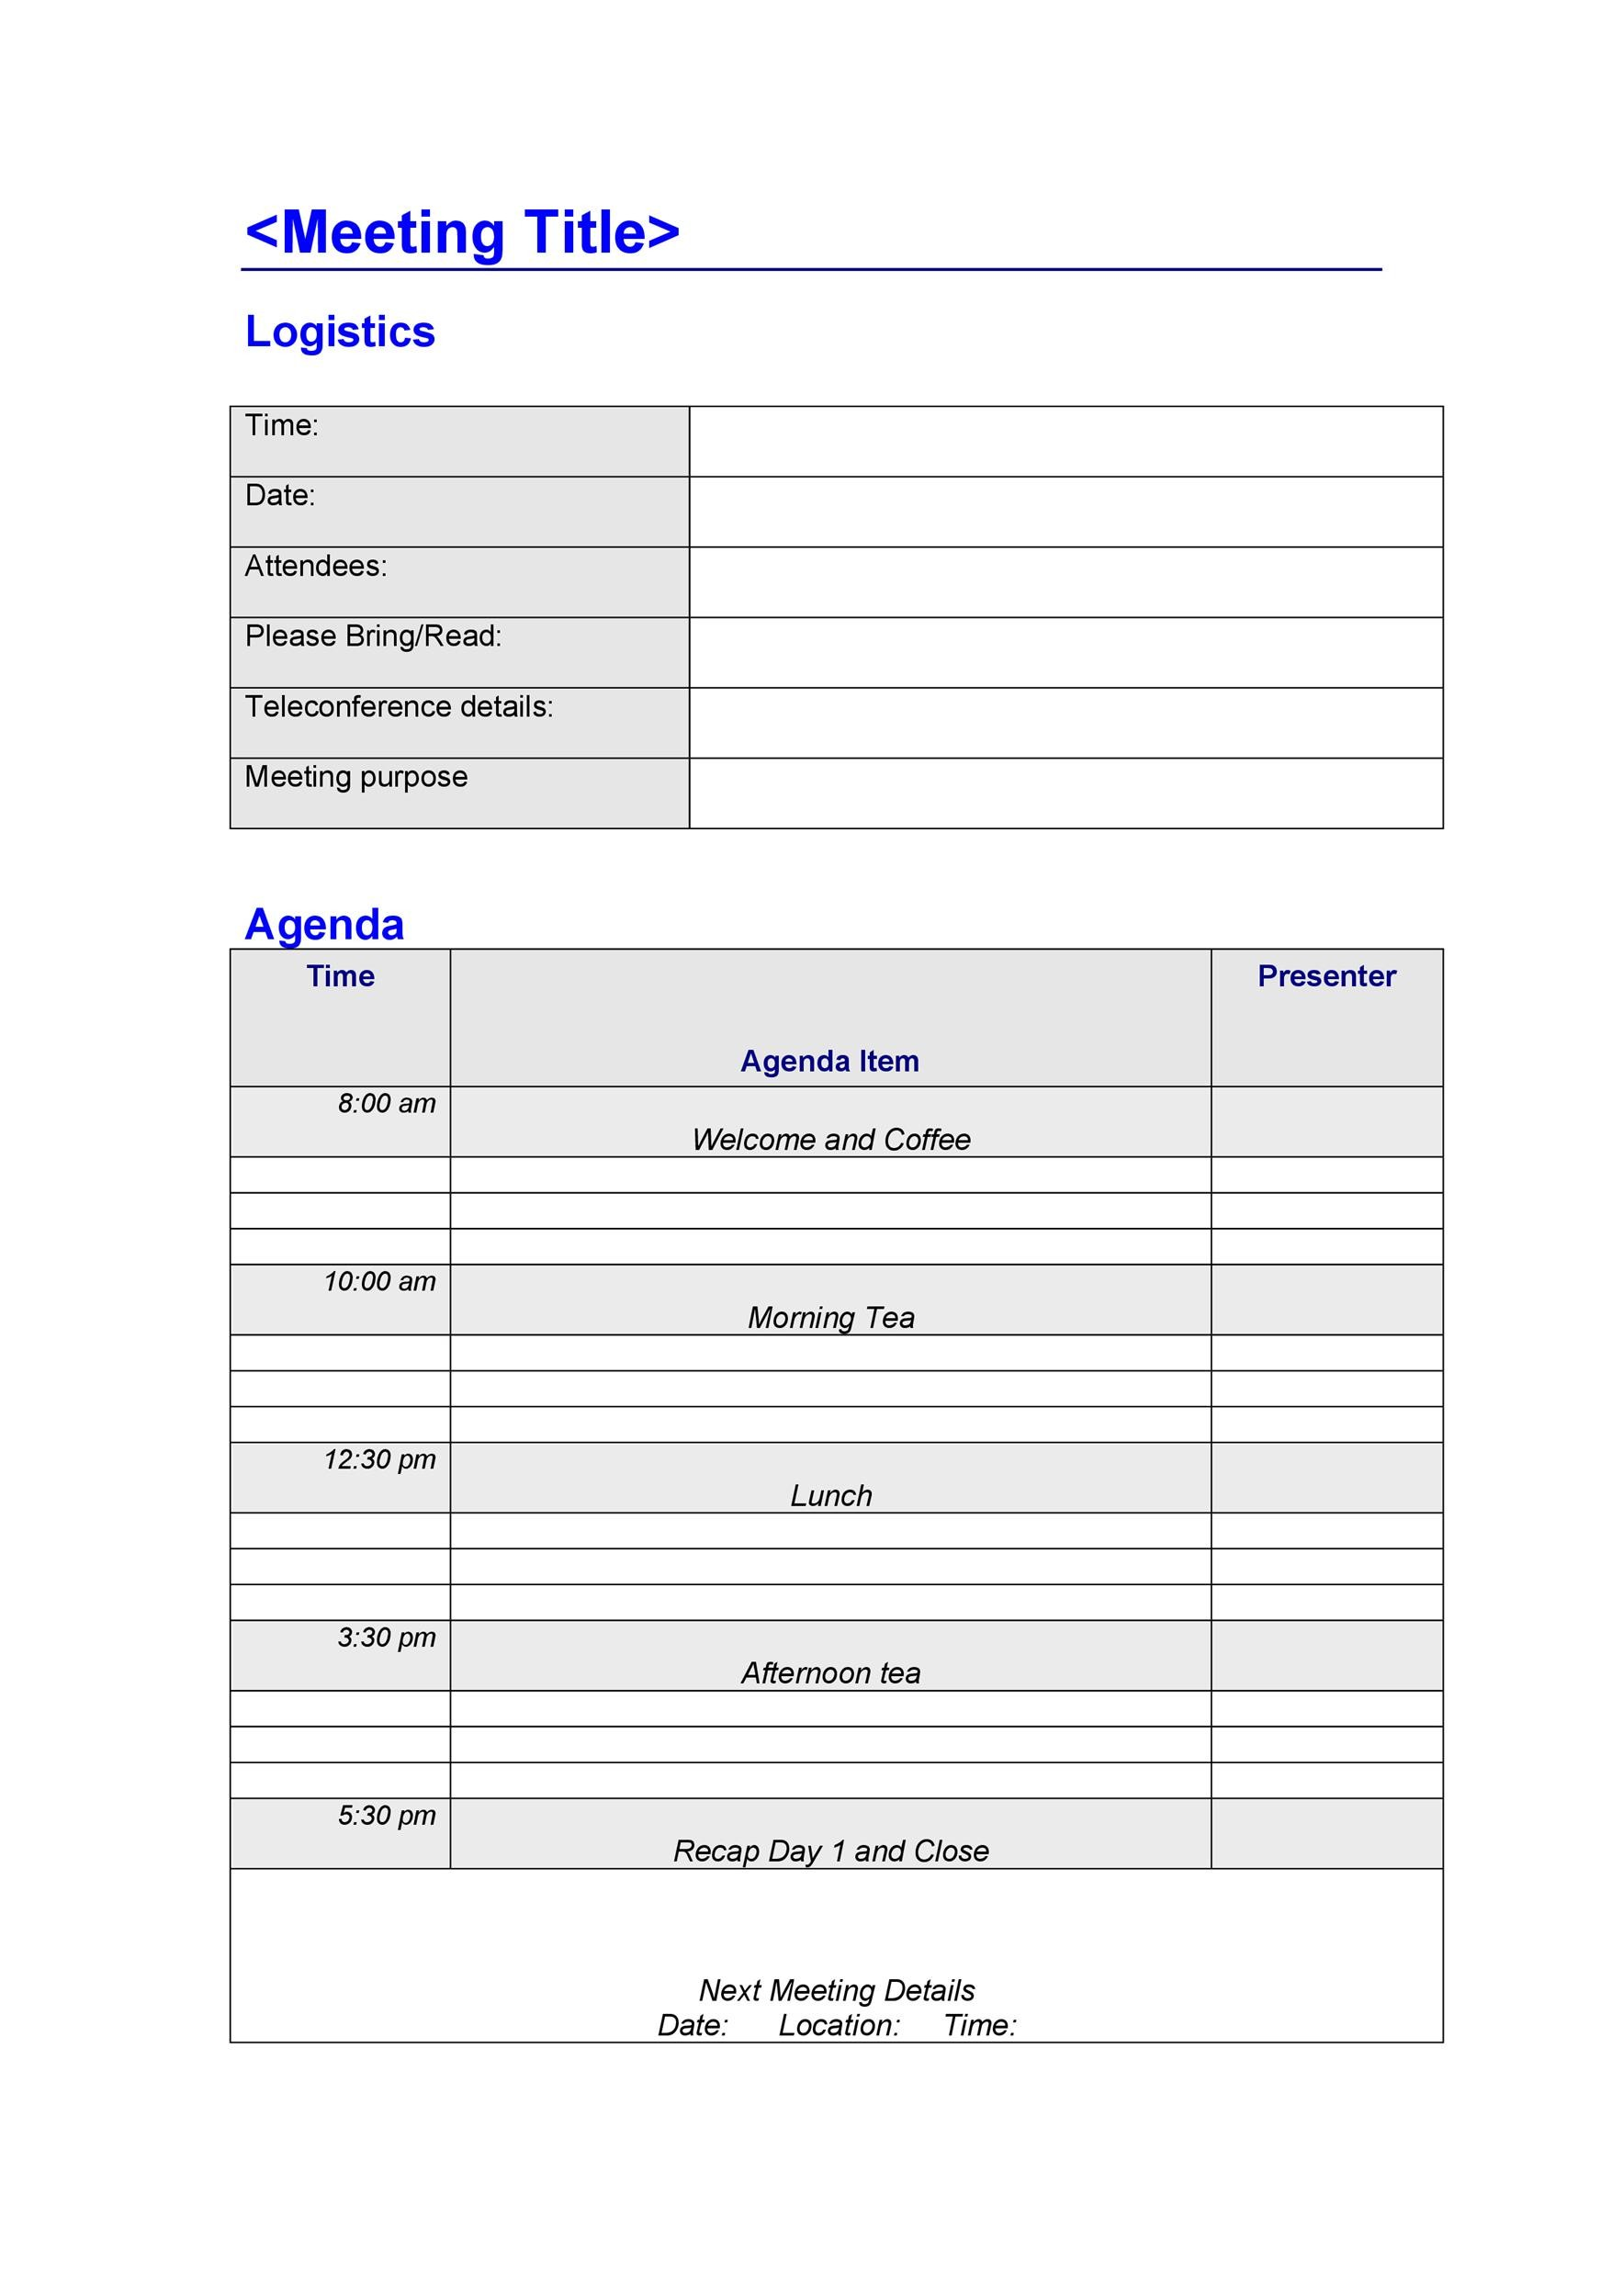 46 Effective Meeting Agenda Templates ᐅ Template Lab